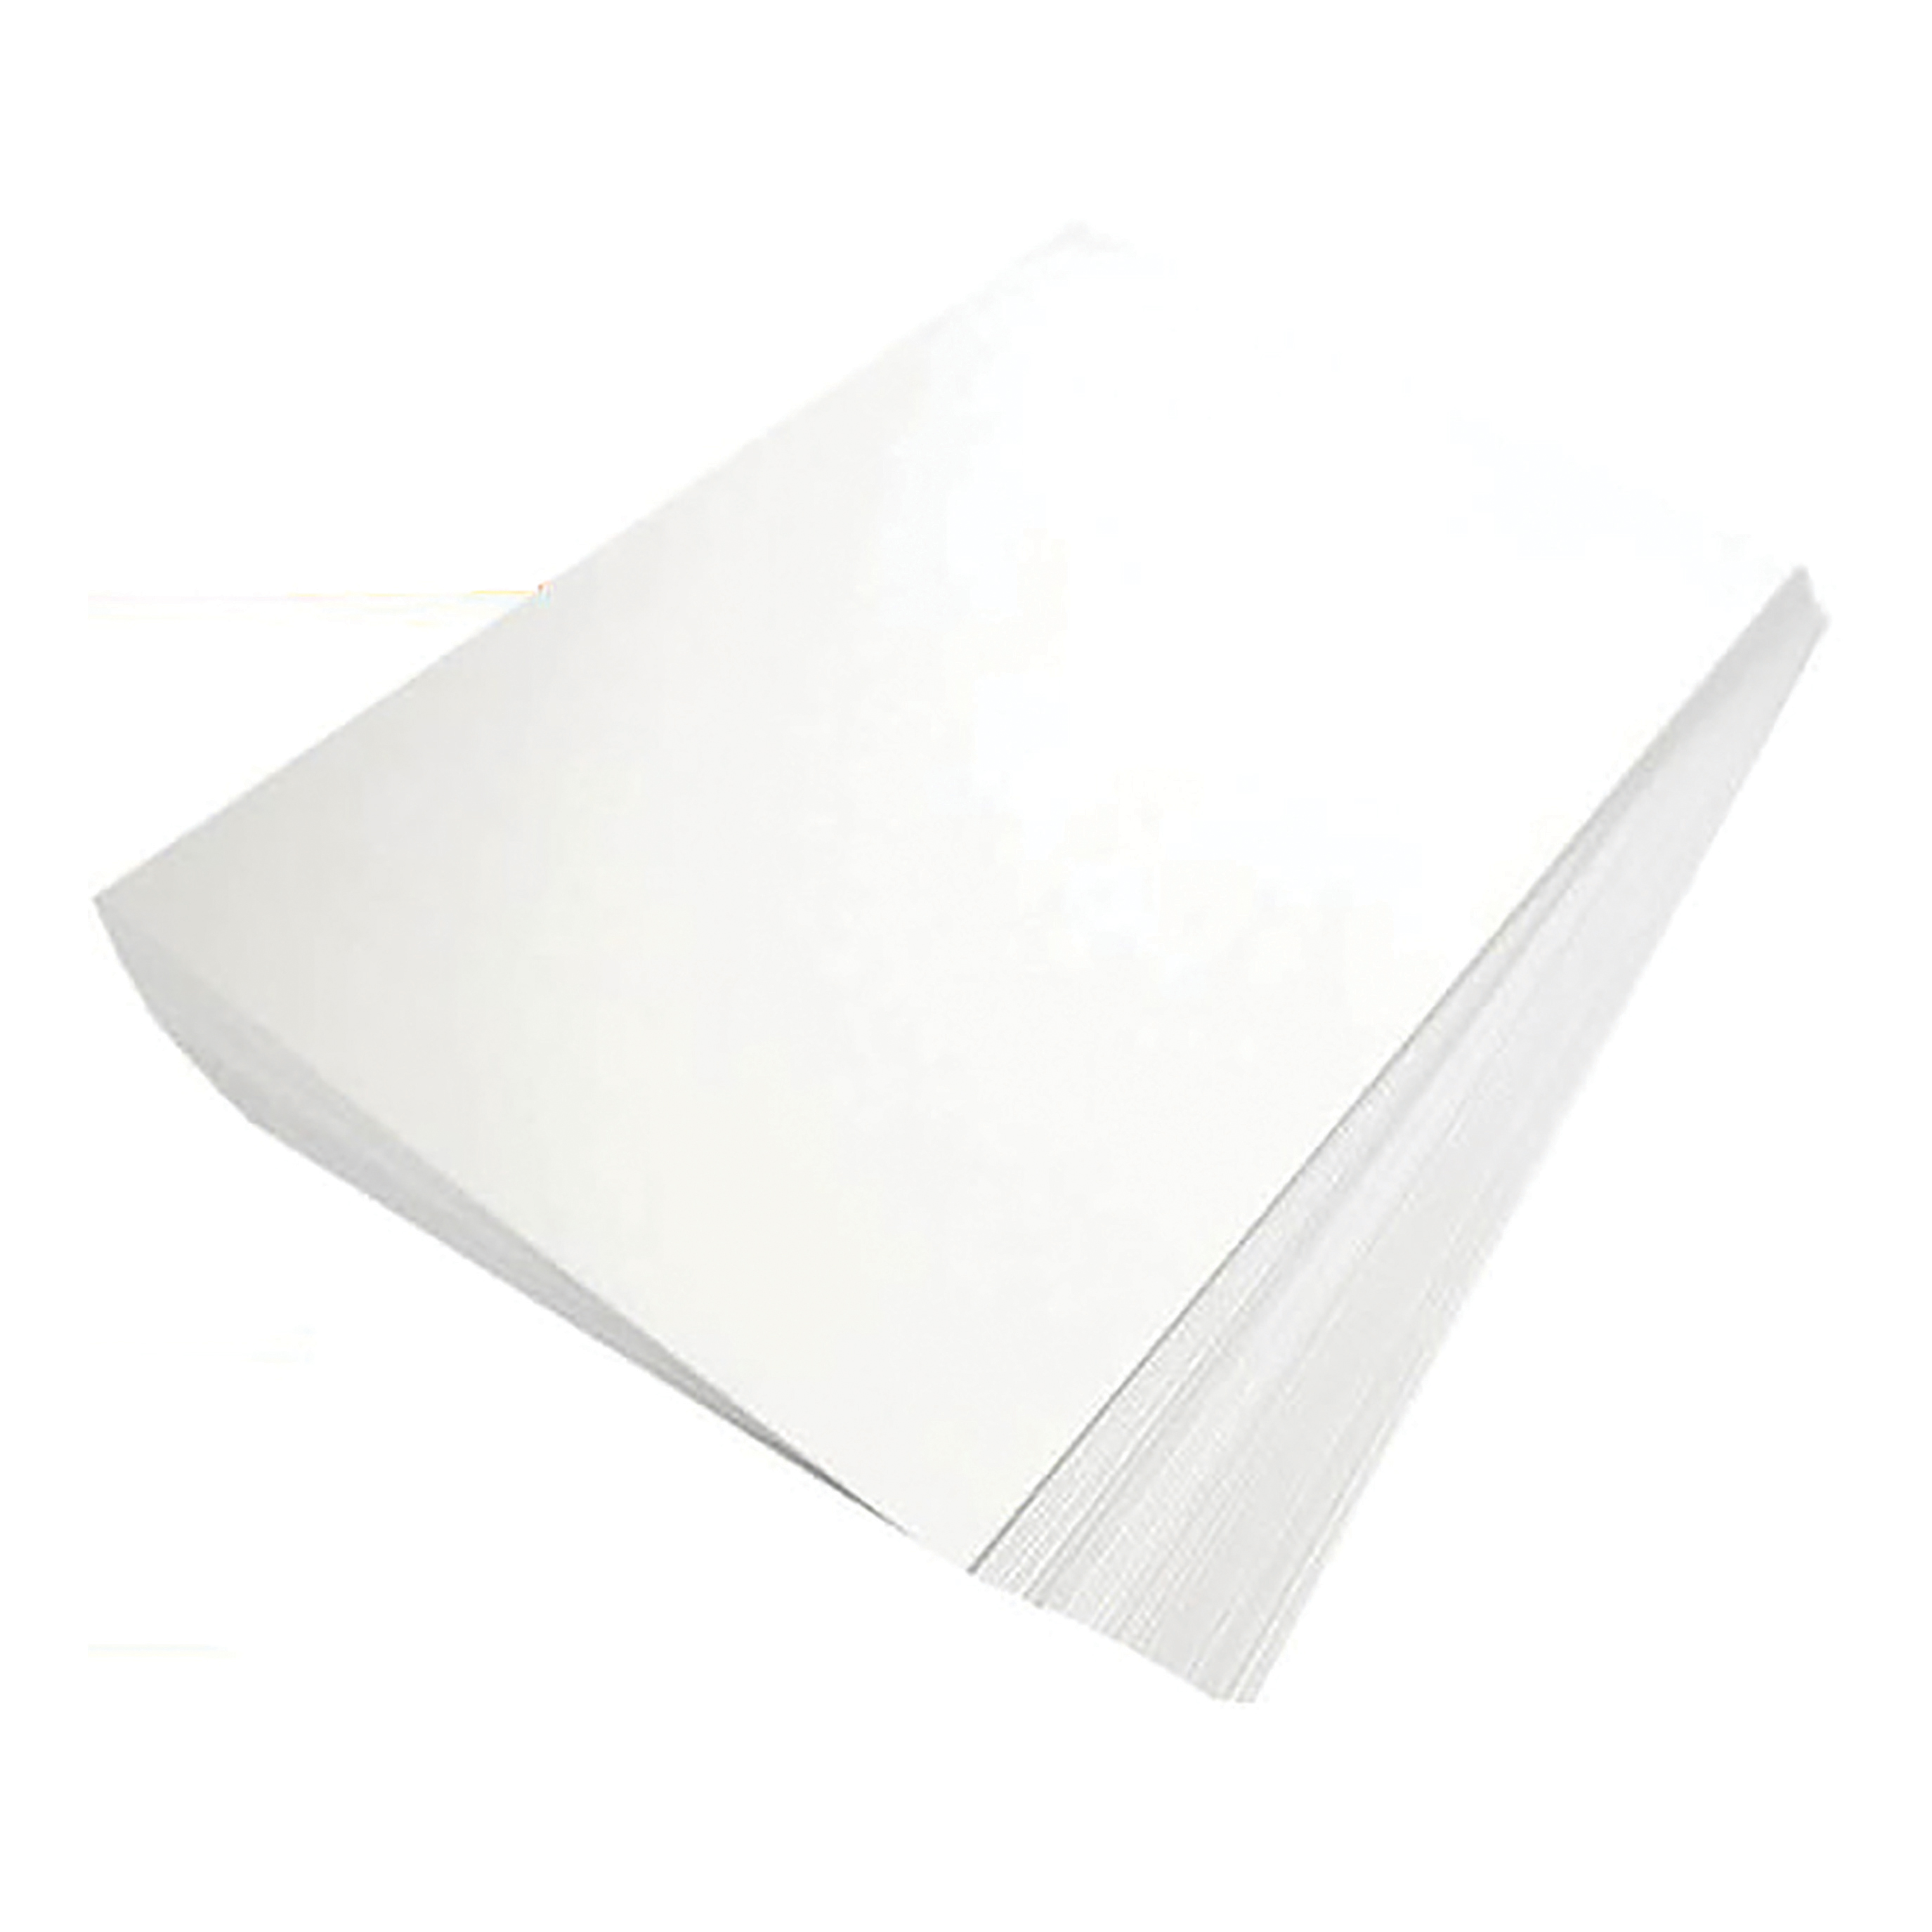 A4 5 Star Elite Premium Business Paper Wove Finish Ream-Wrapped 100gsm A4 High White [500 Sheets]